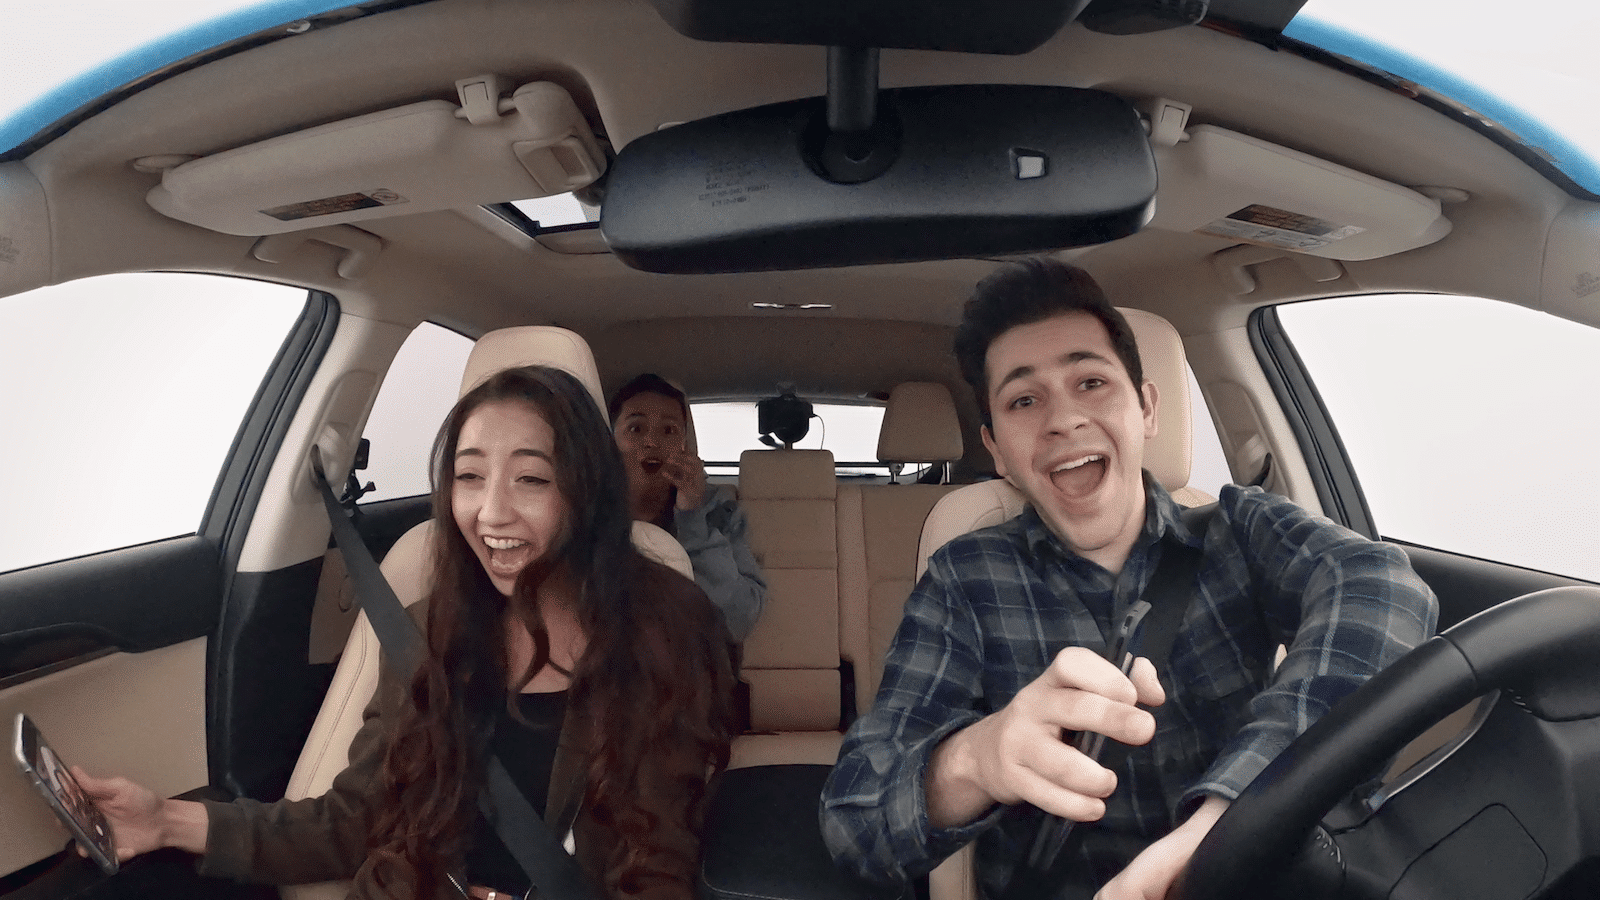 Lexus-Driving-Disrupted-distracted-drive